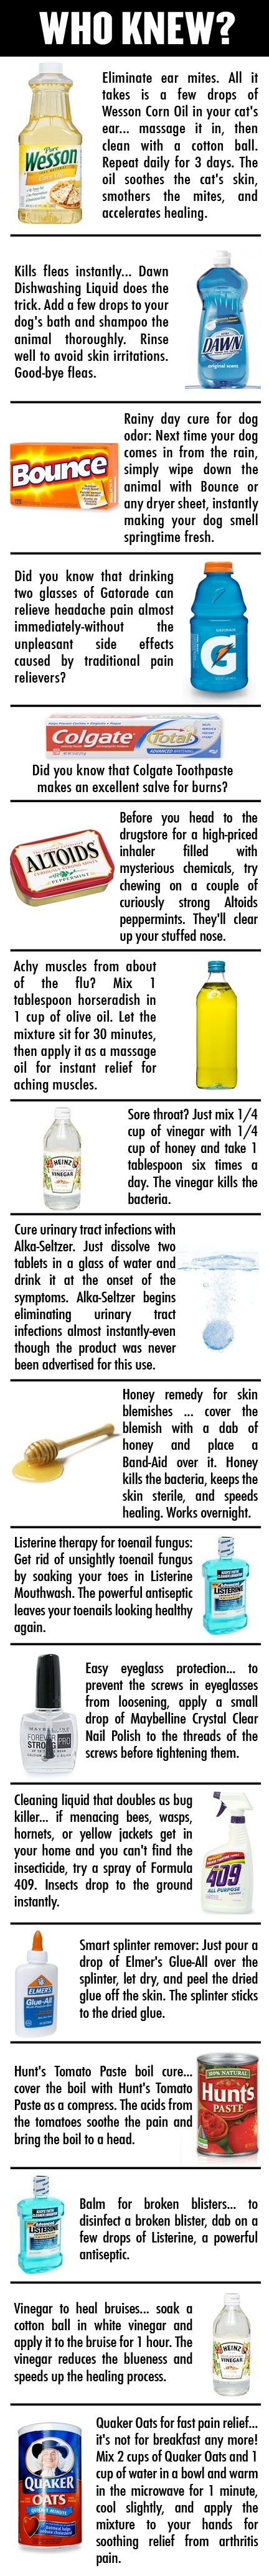 Burns: Colgate Toothpaste // Splinter remover: Elmer's Glue // Bruises: Vinegar // Blemishes: Honey